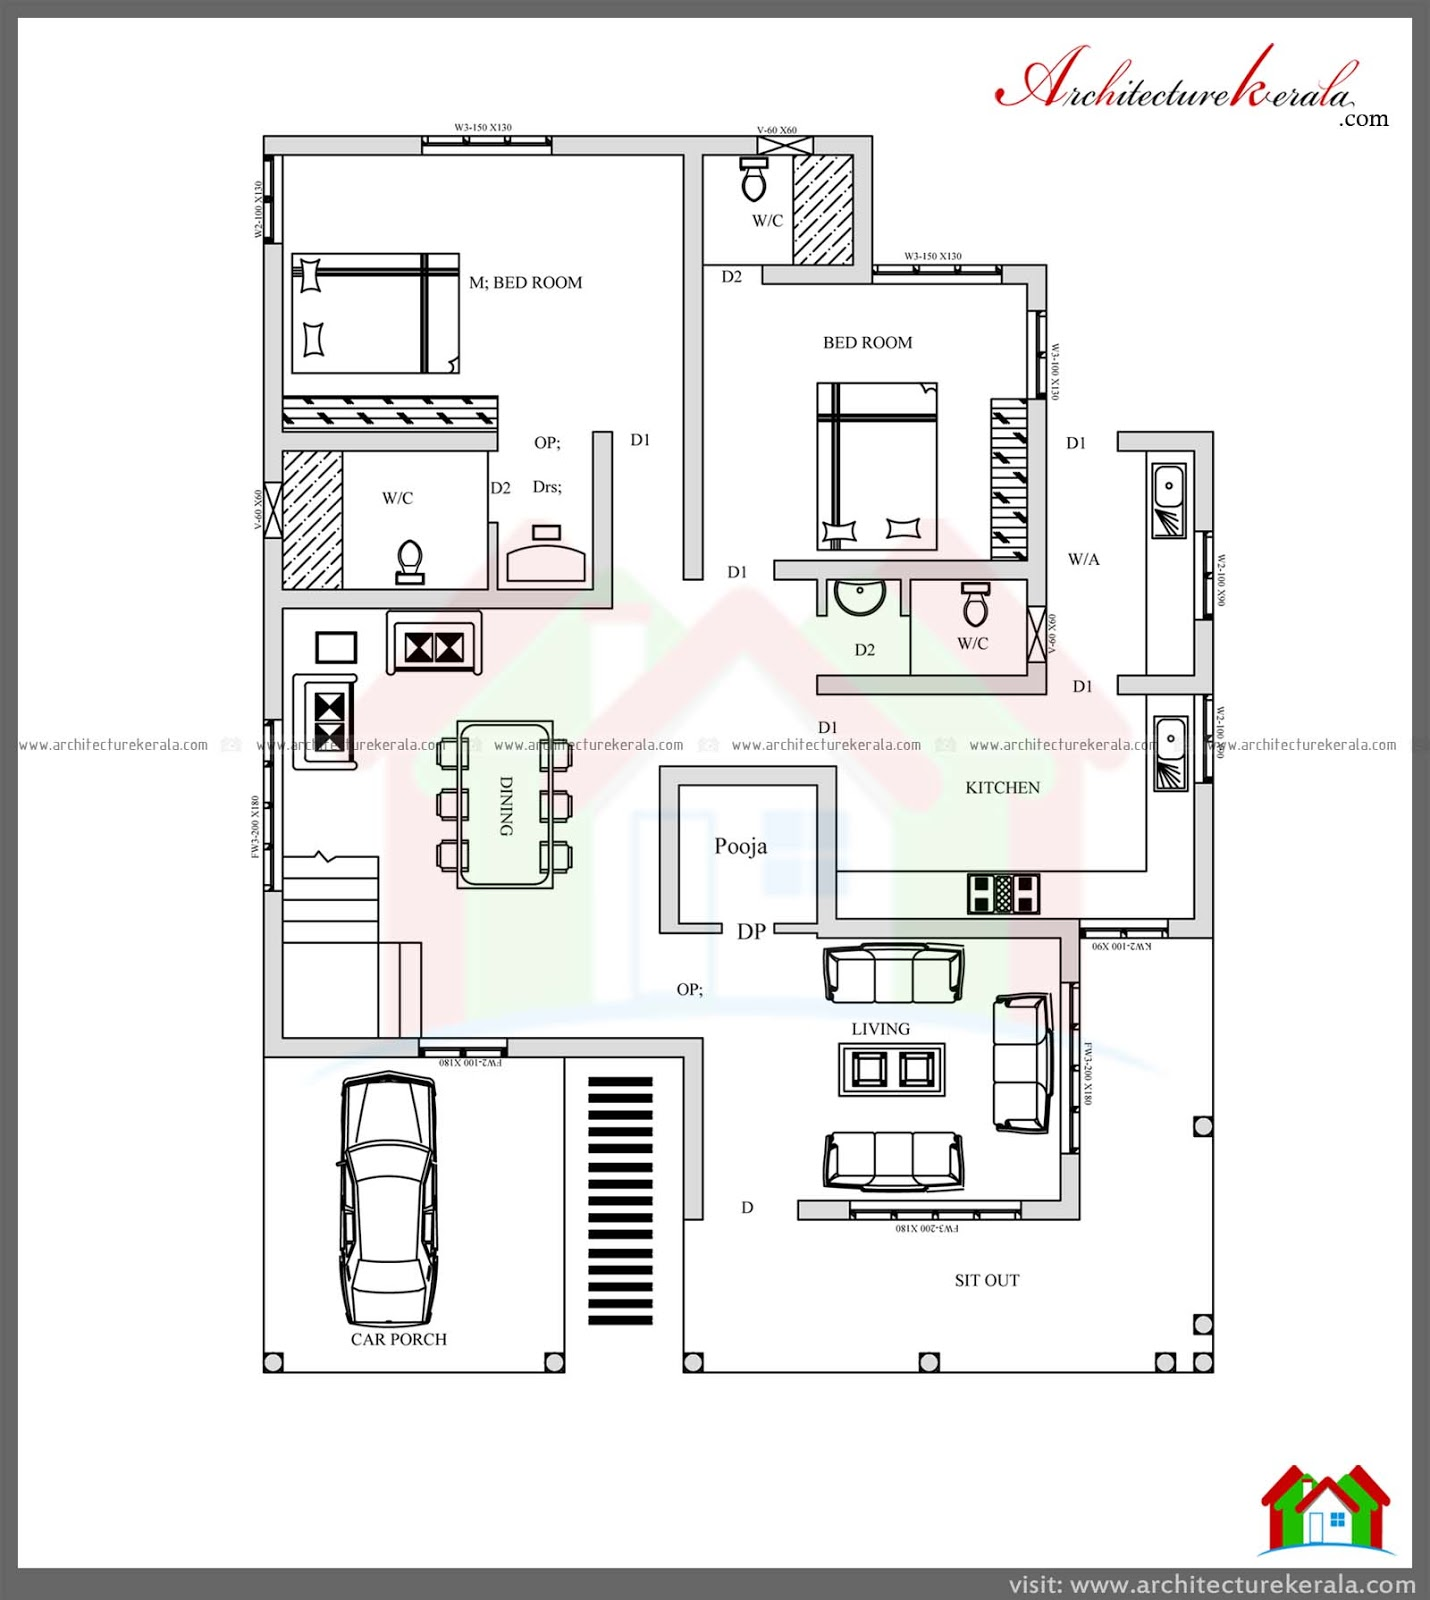 4 bed house plan with pooja room architecture kerala for Four room house design